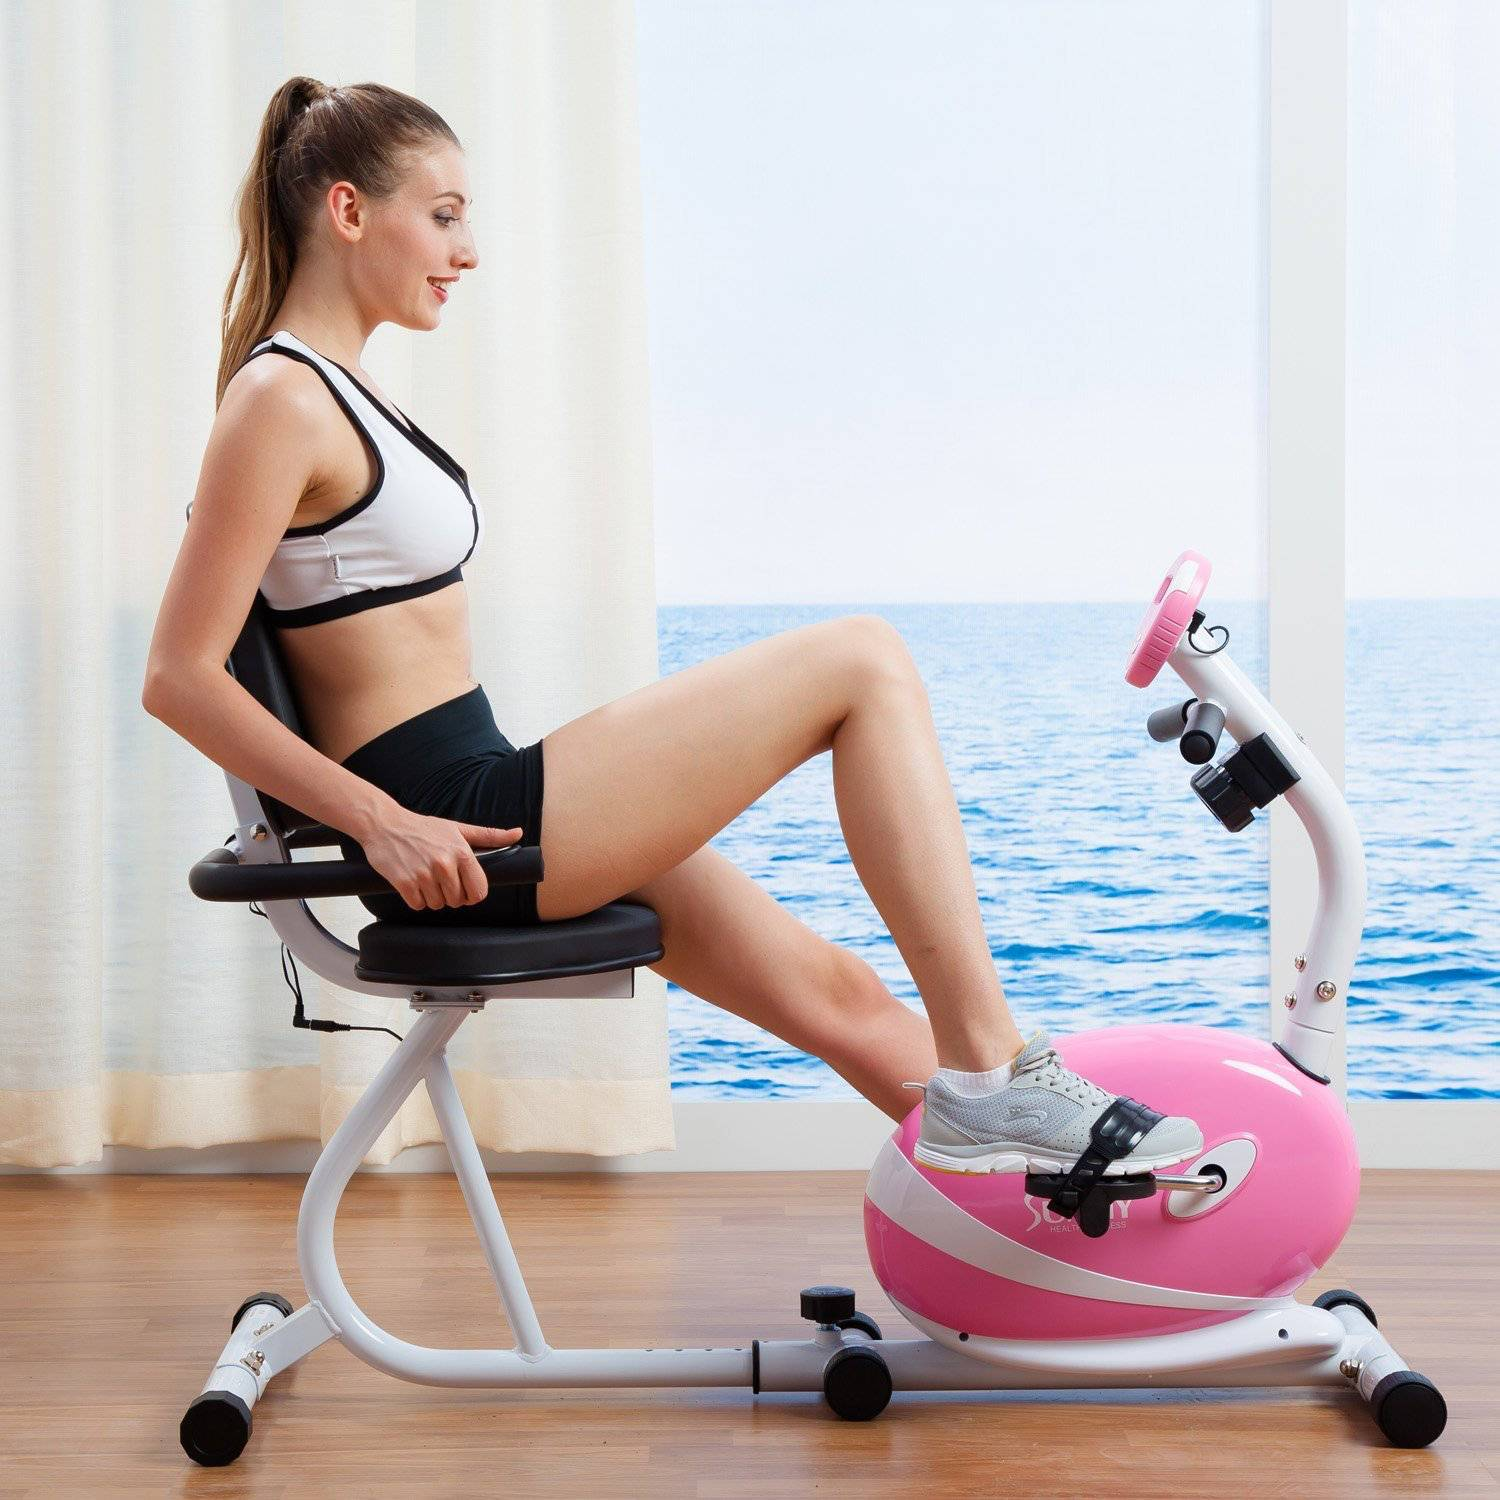 5 Different Types of Exercise Bikes To Meet Your Fitness Goals – 2017